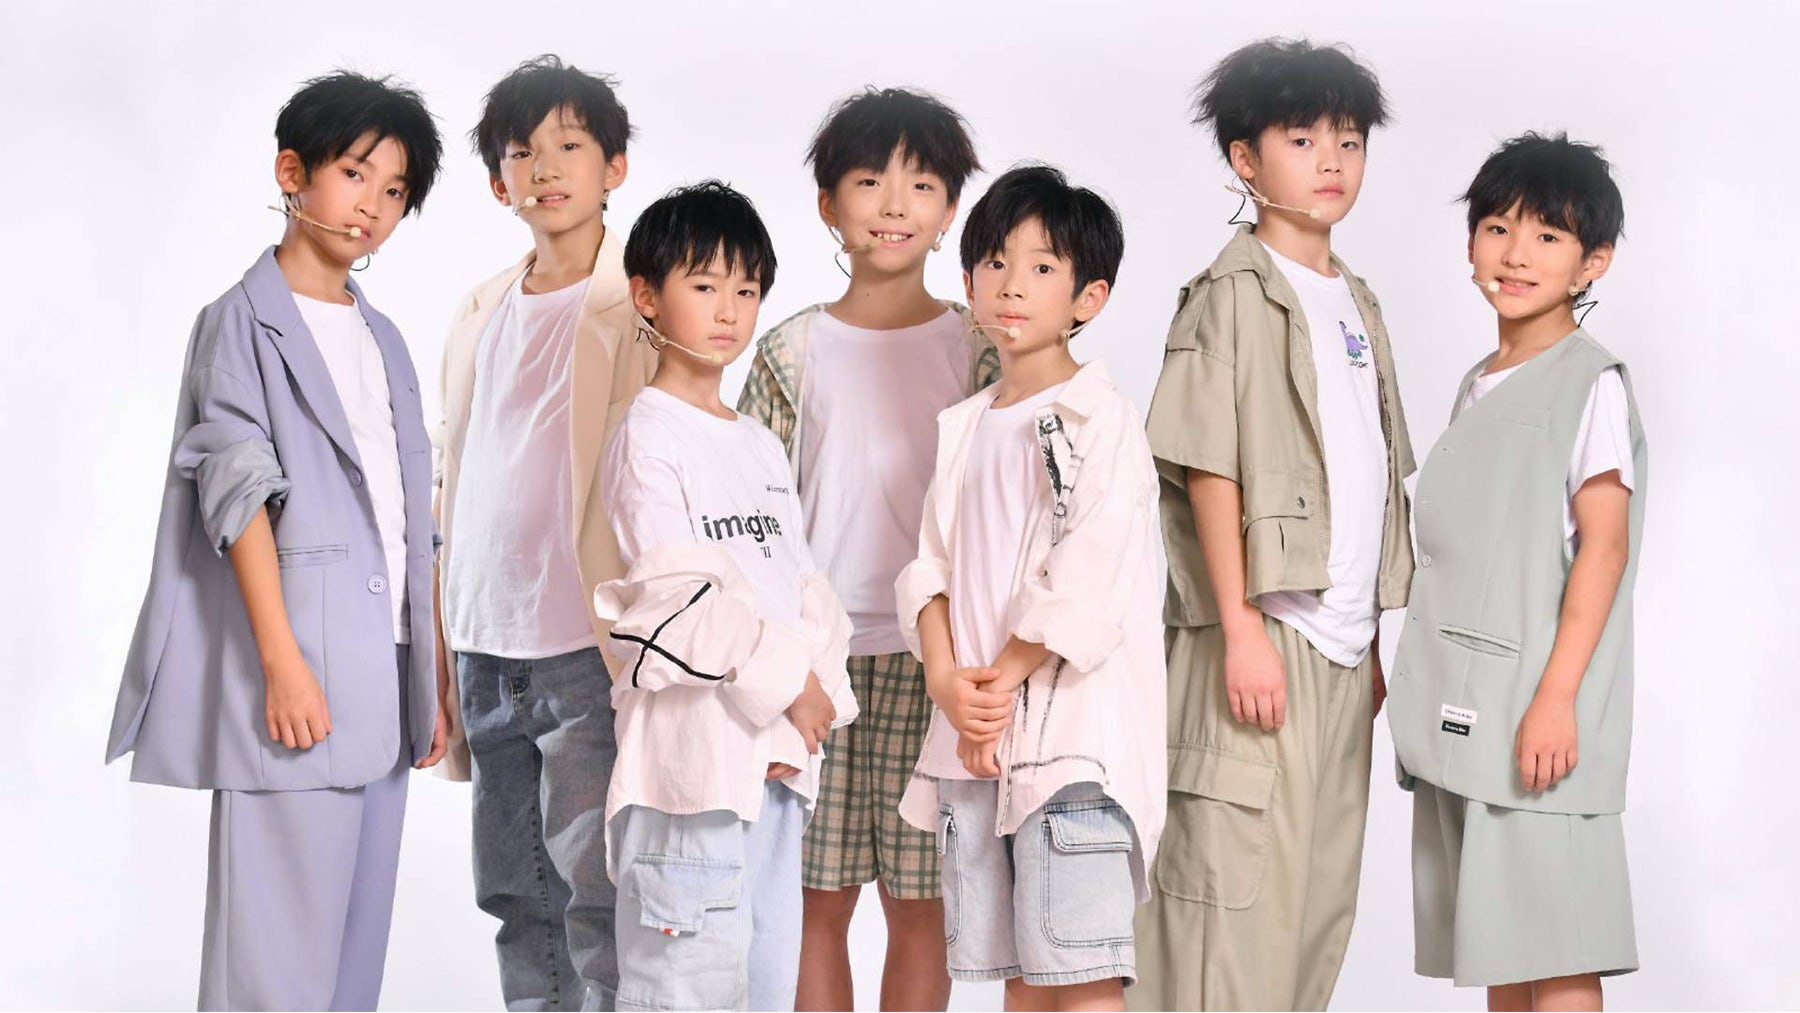 The Panda Boys range in age from 7 to 11 years old. ASE Agency.